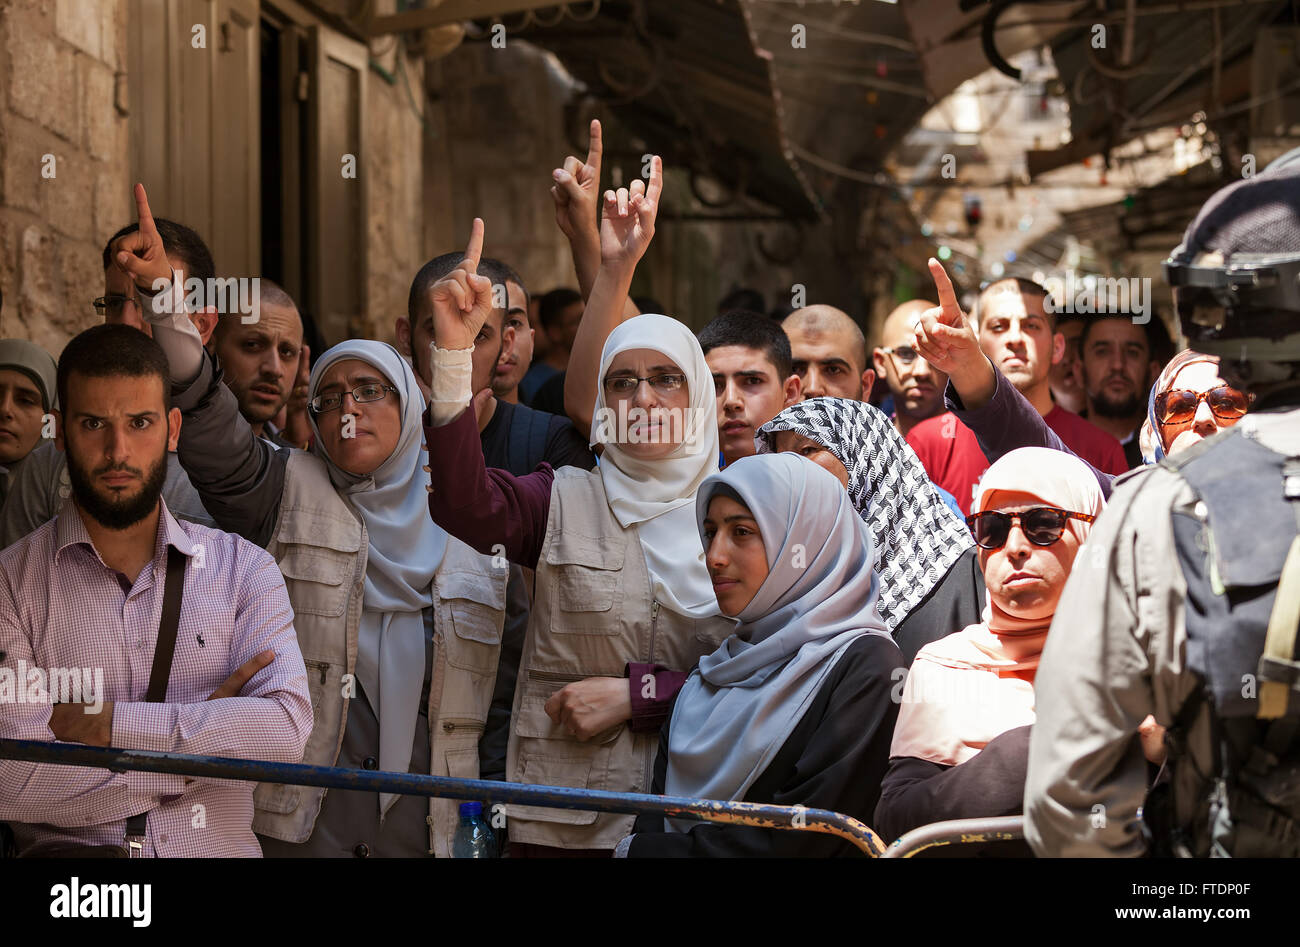 Palestinians protest in Old City of Jerusalem against ascent of religious Jews to Temple Mount in Jerusalem. - Stock Image